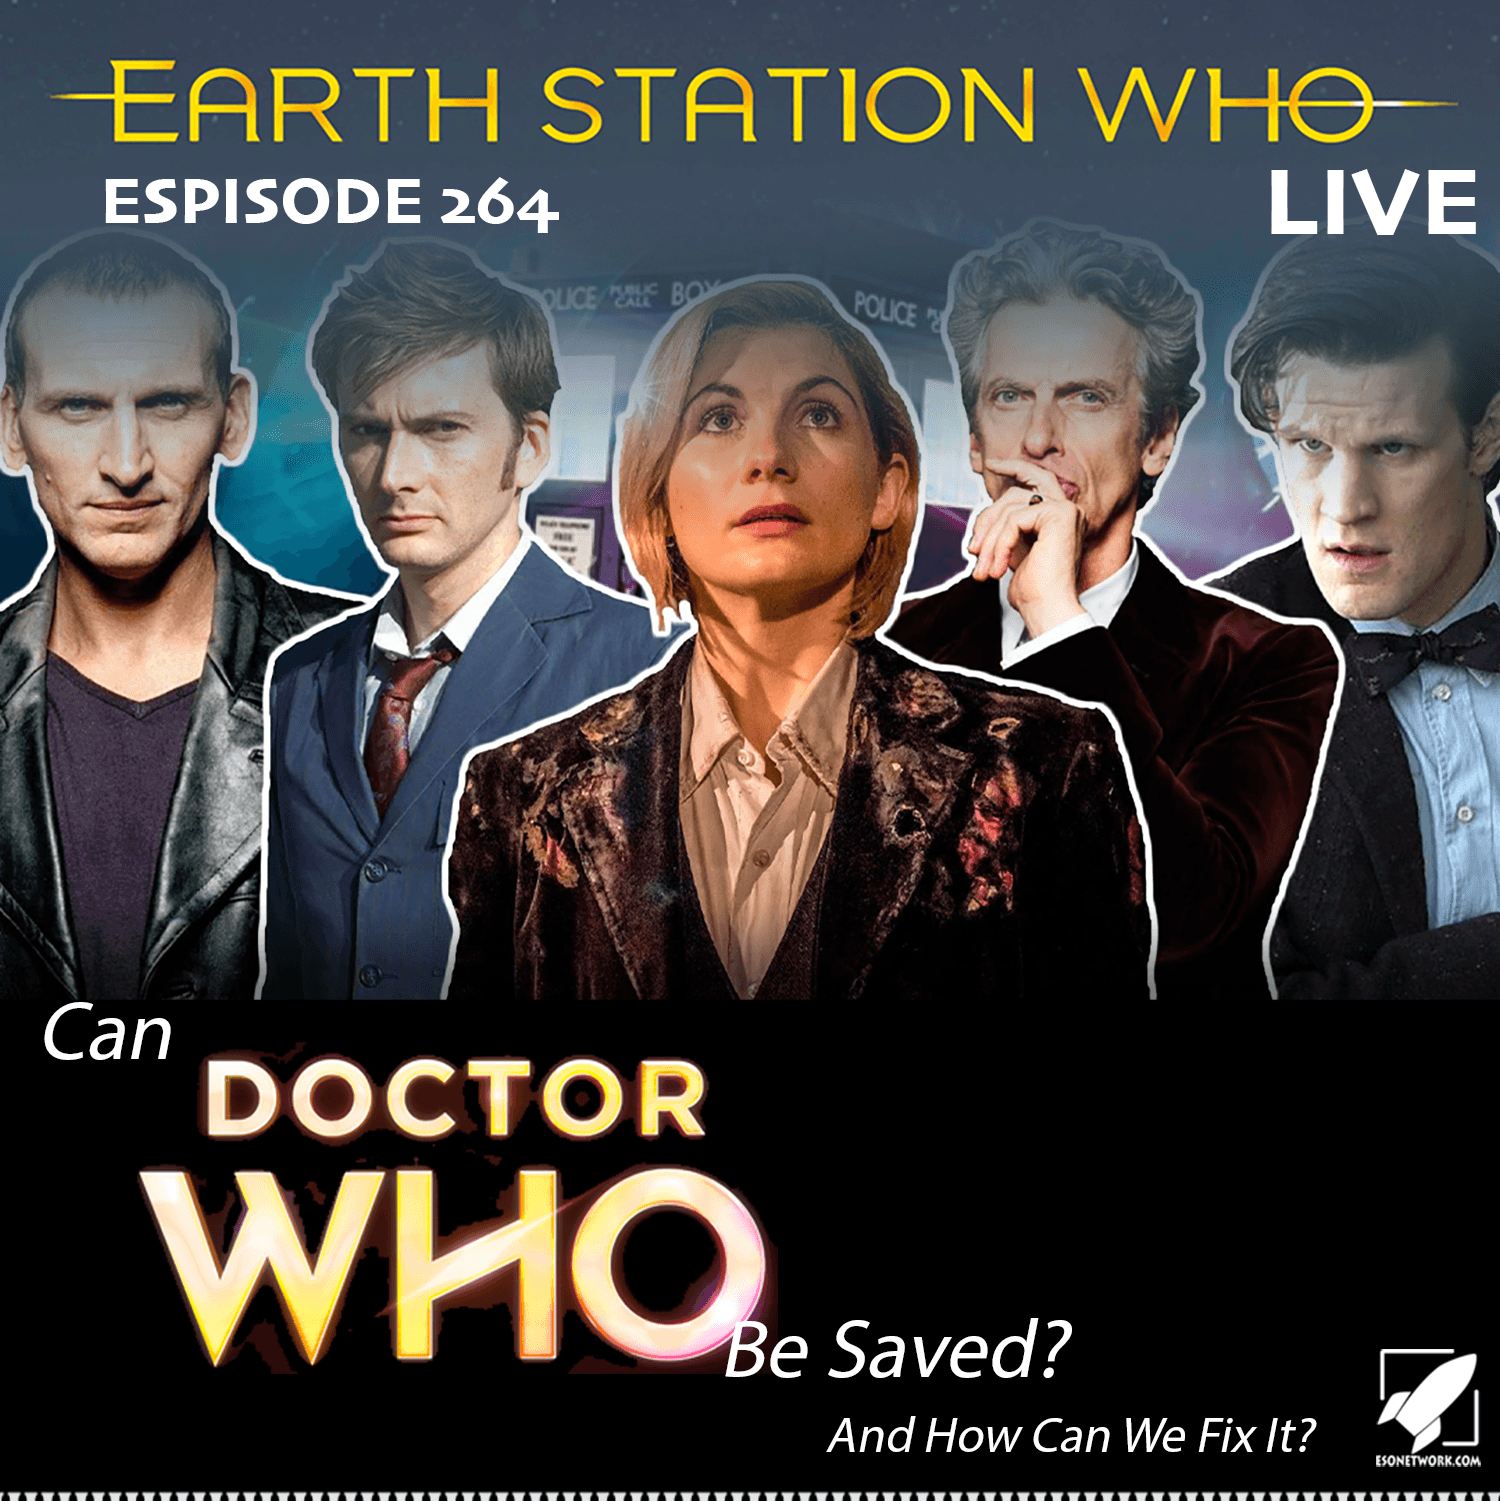 Earth Station Who Ep 264